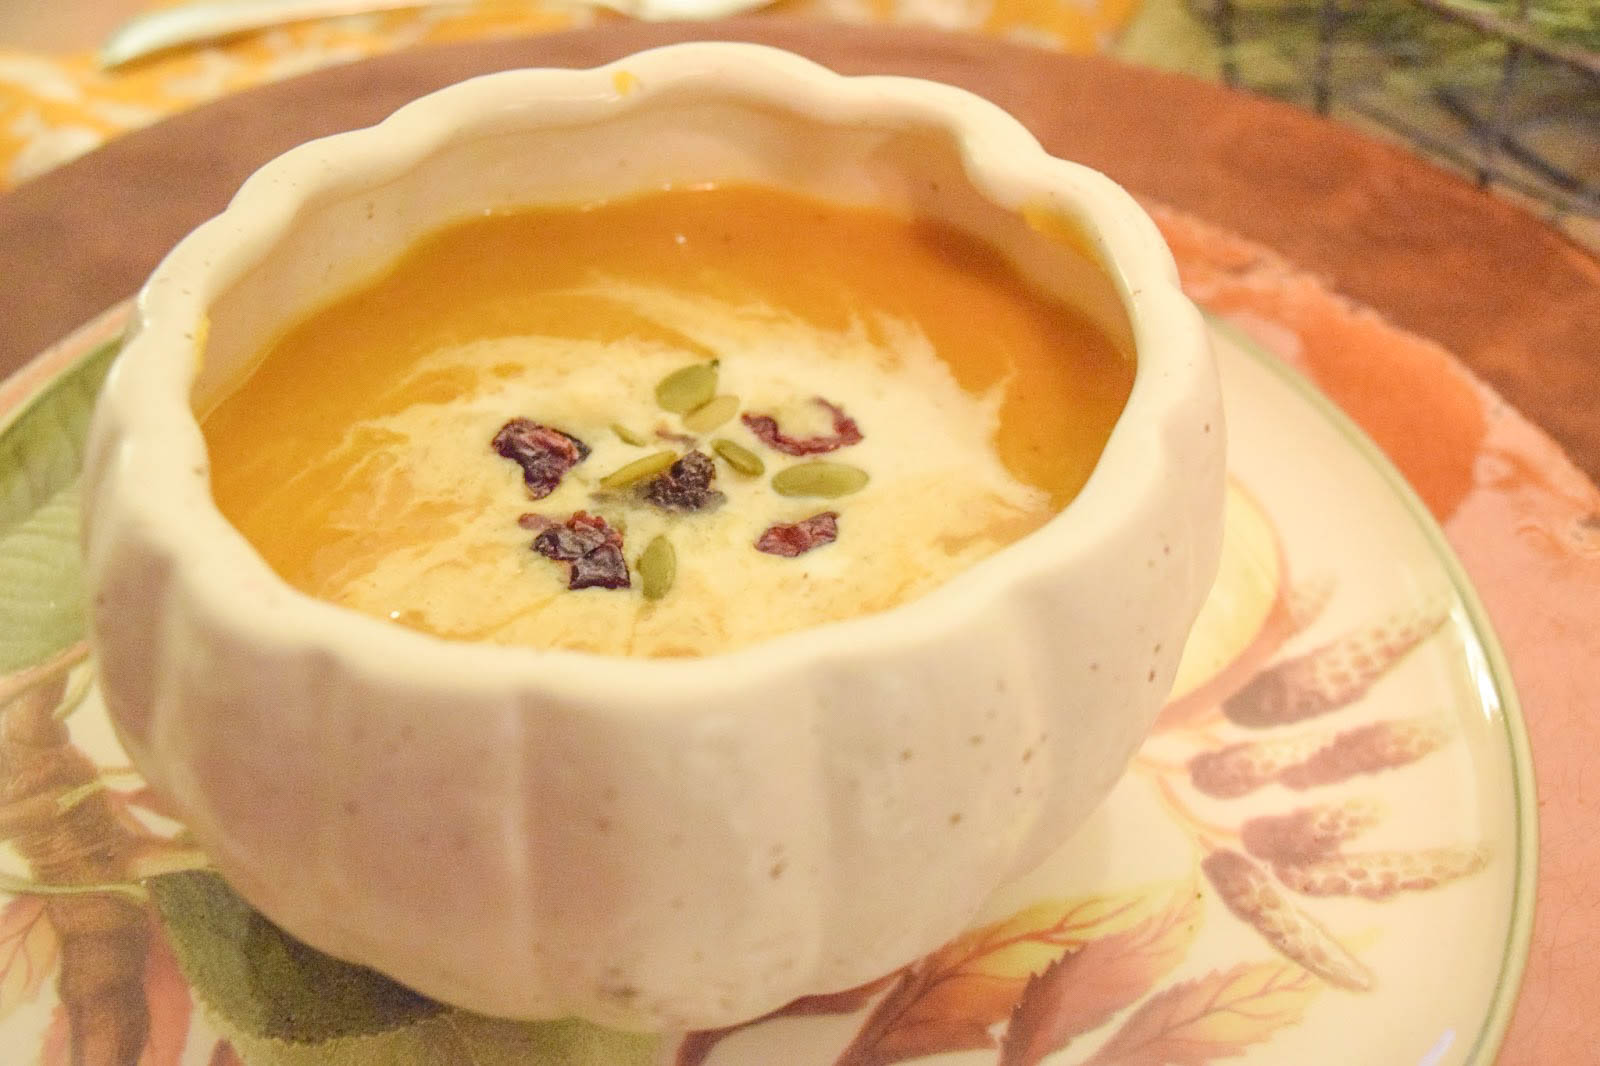 The Easiest (And Best) Butternut Squash Soup Recipe - Looking for a delicious butternut squash soup recipe? You've come to the right place!   Fall Soup Recipe - Butternut Squash Recipe - Easy Butternut Squash Recipe - Easy Butternut Squash Soup